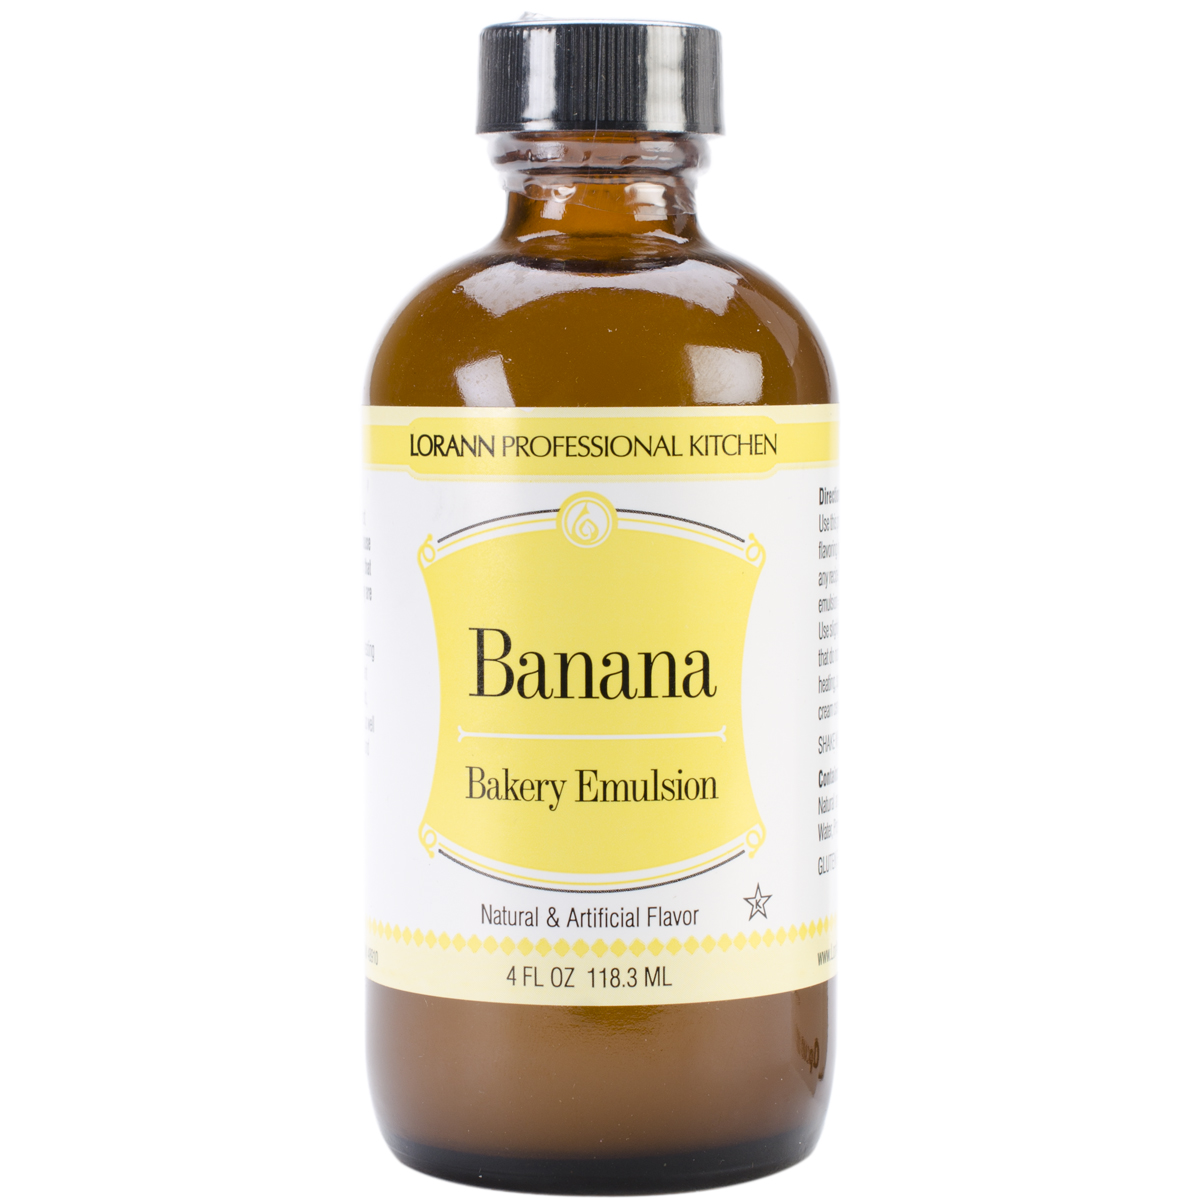 Lorann Oils Bakery Emulsions Natural & Artificial Flavor Banana